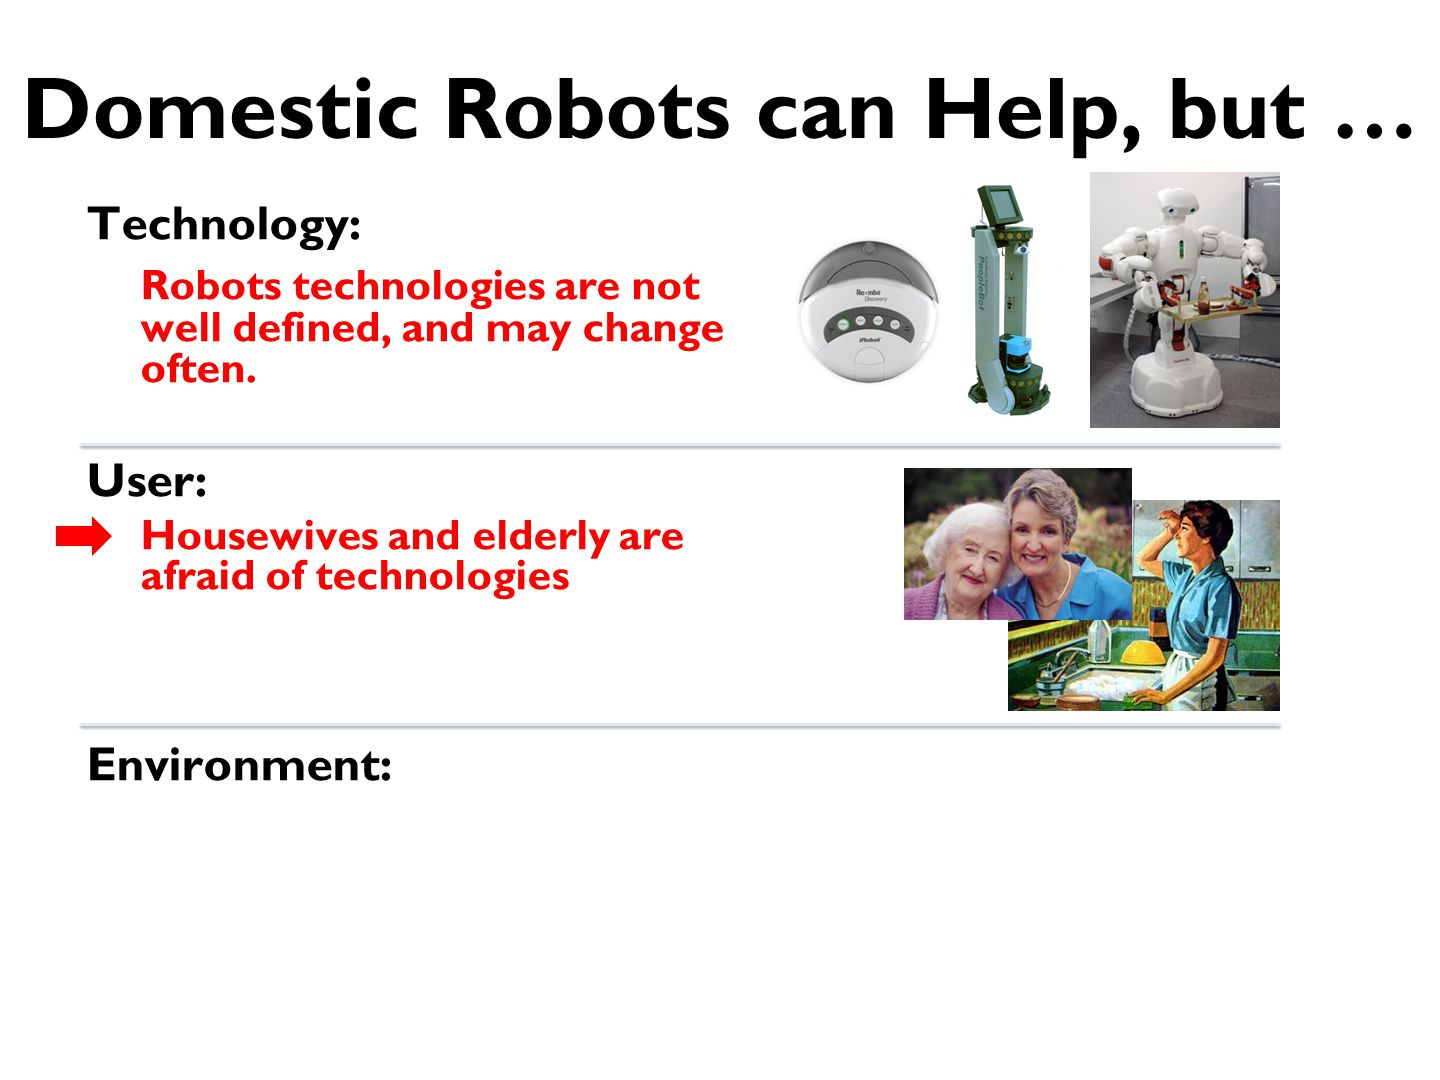 Domestic Robots can Help, but … Technology: Robots technologies are not well defined, and may change often.